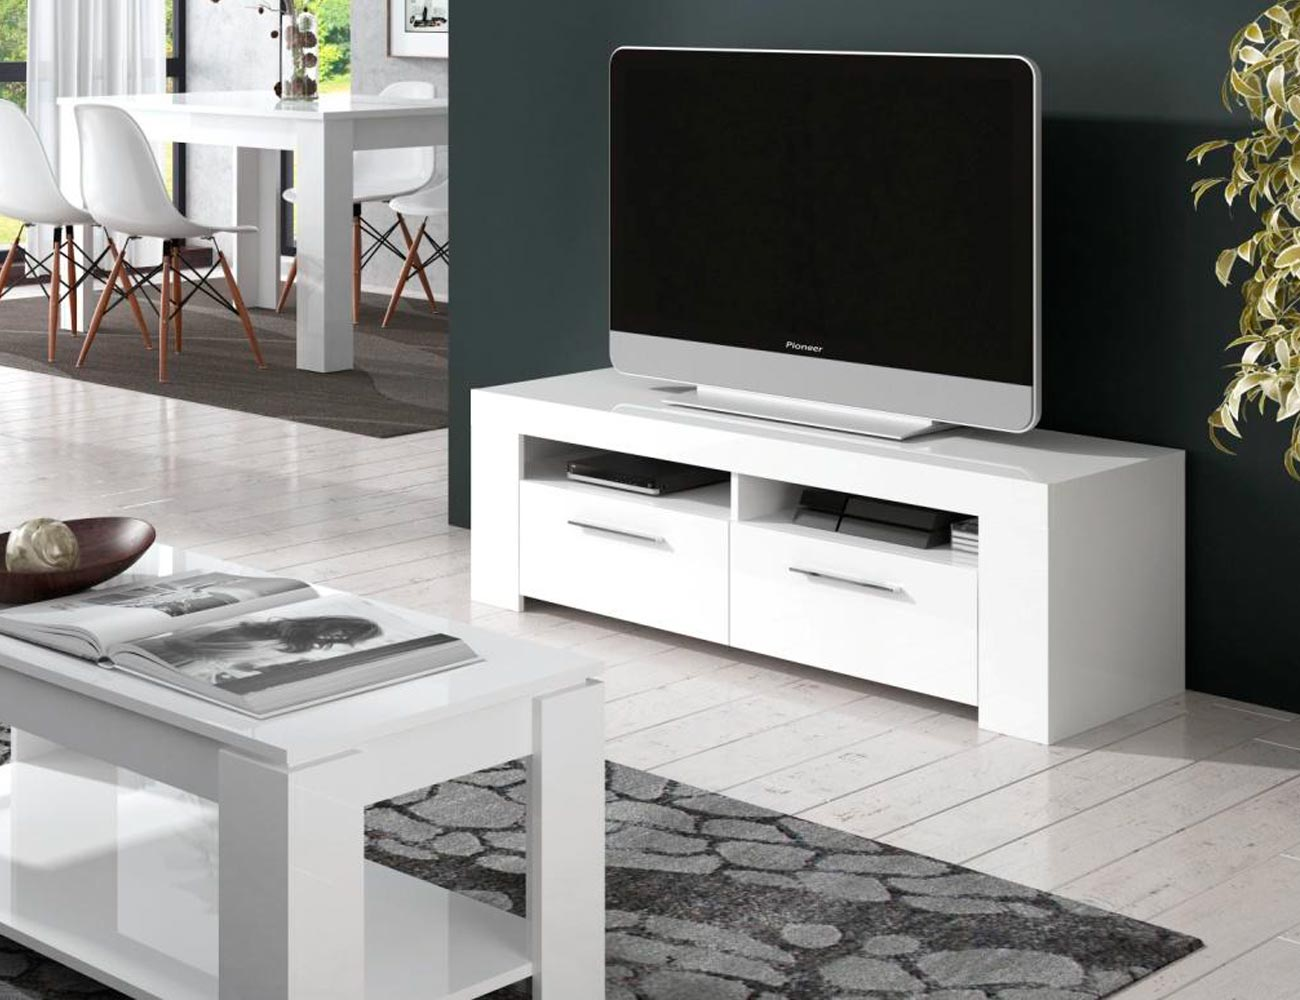 Mueble salon blanco brillo